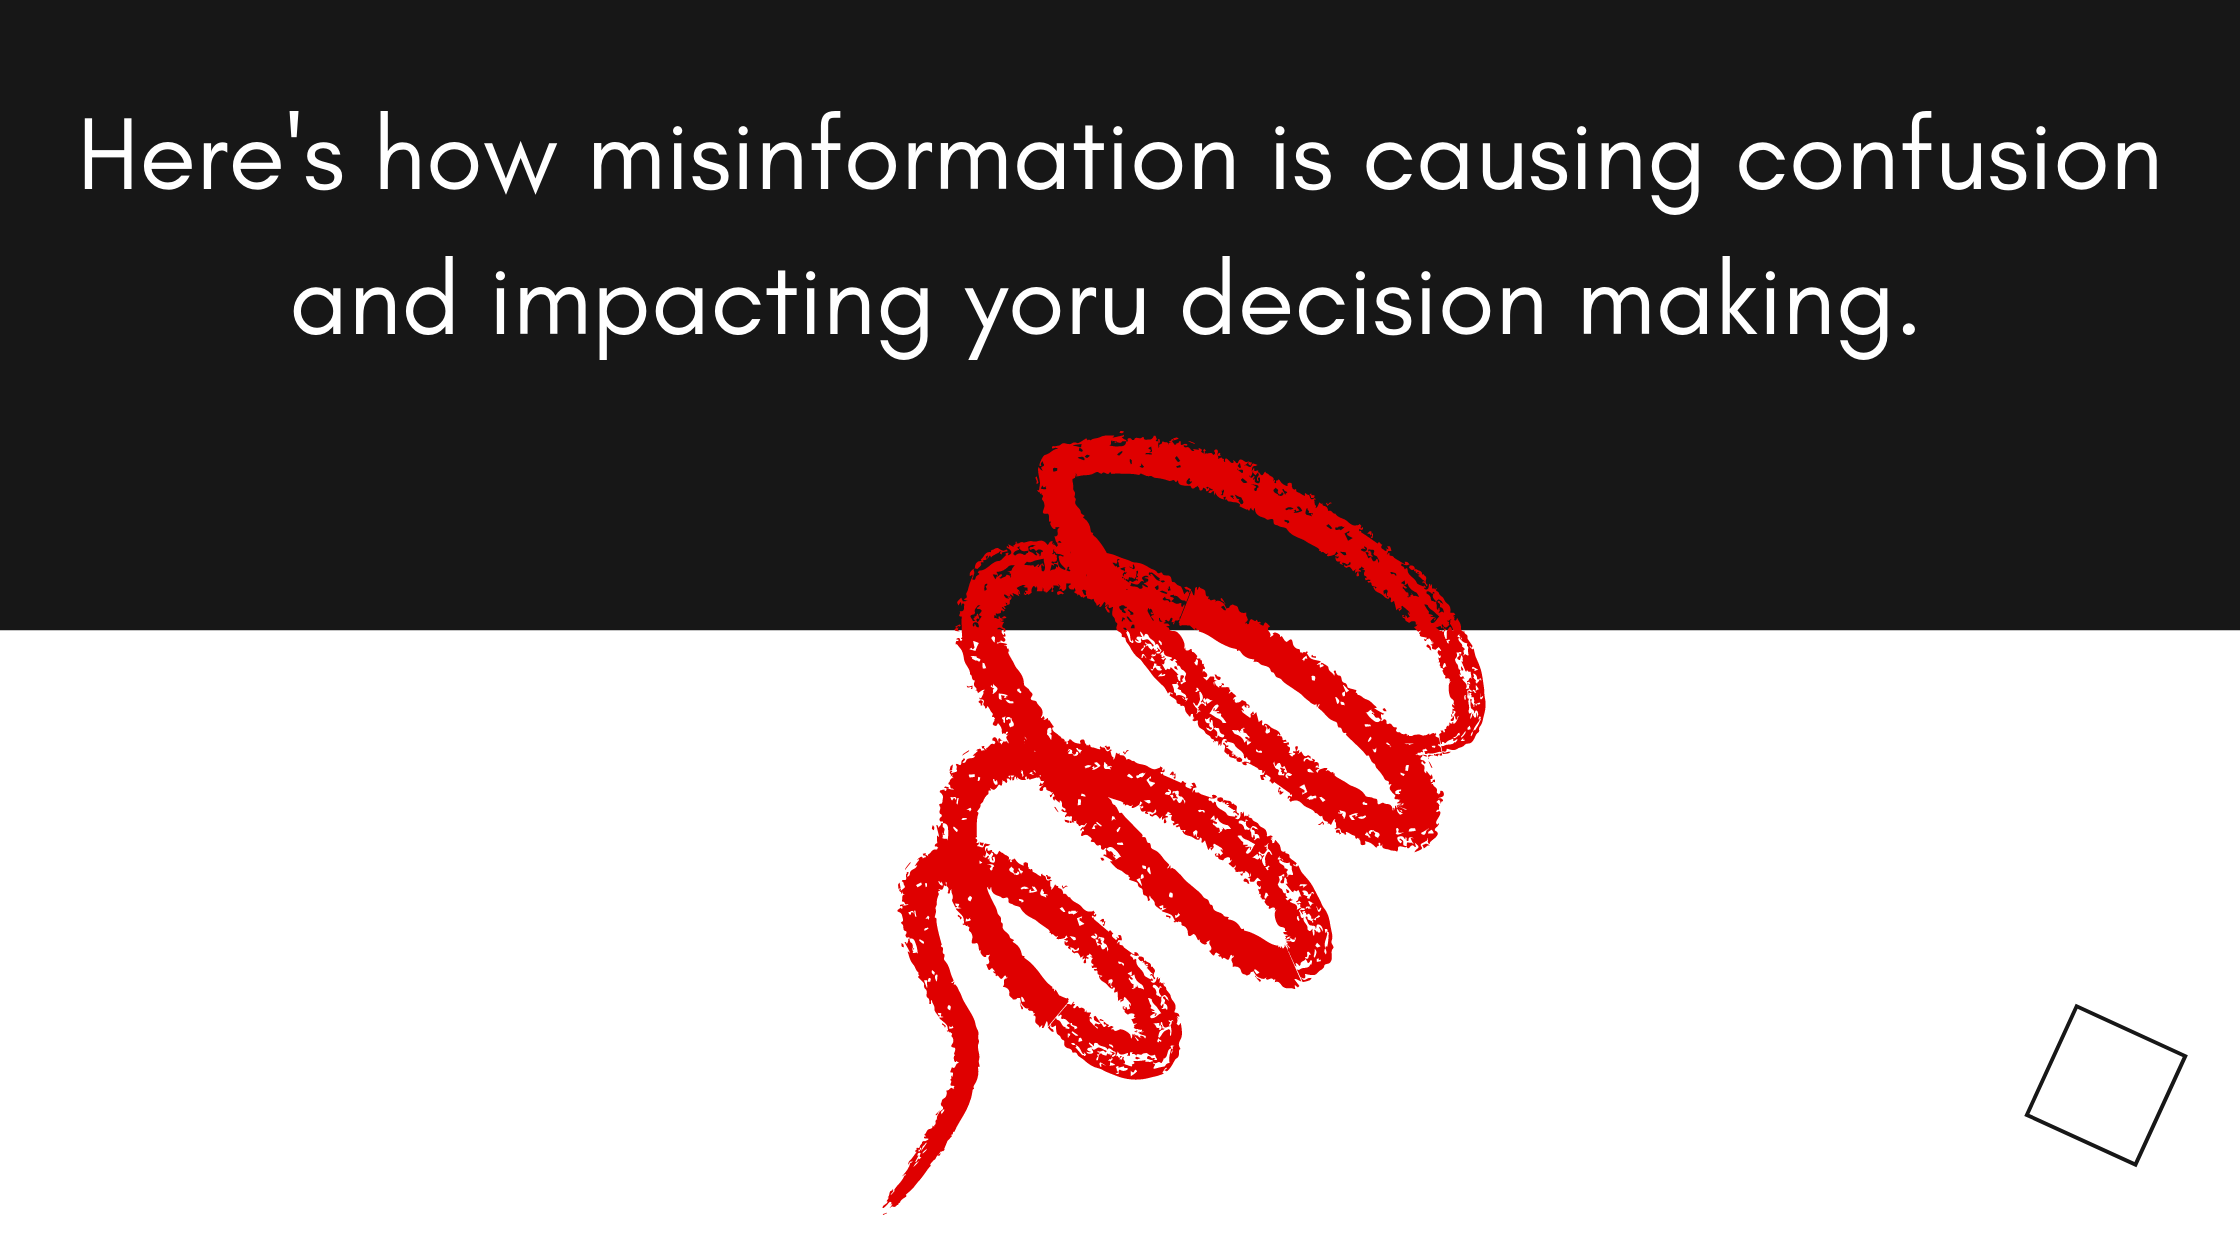 misinformation and mass confusion